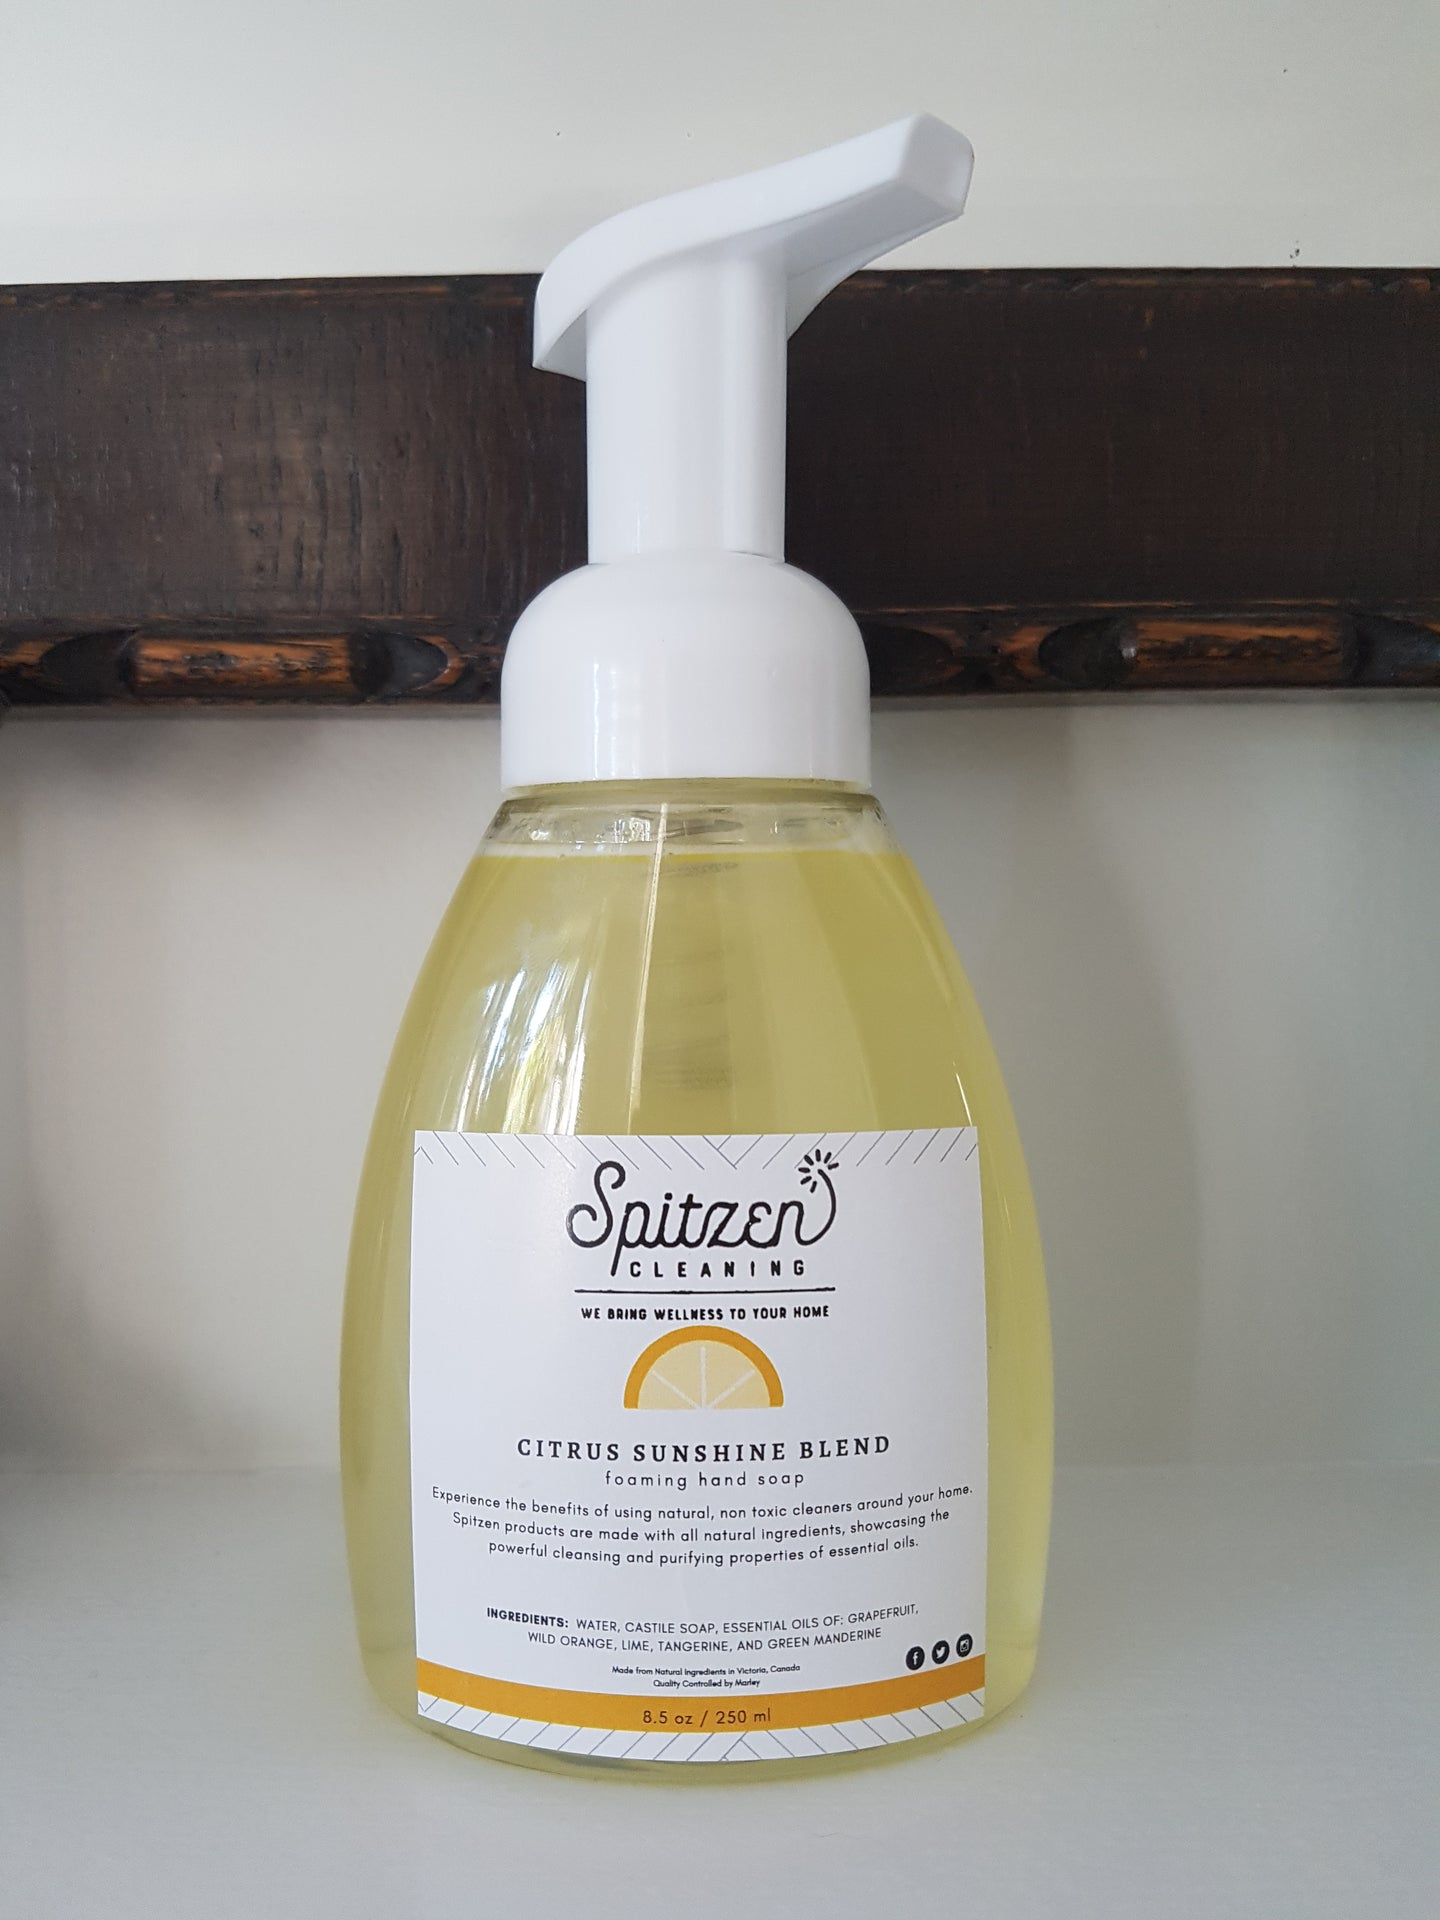 Citrus Sunshine Blend Foaming Hand Soap 8.5 oz